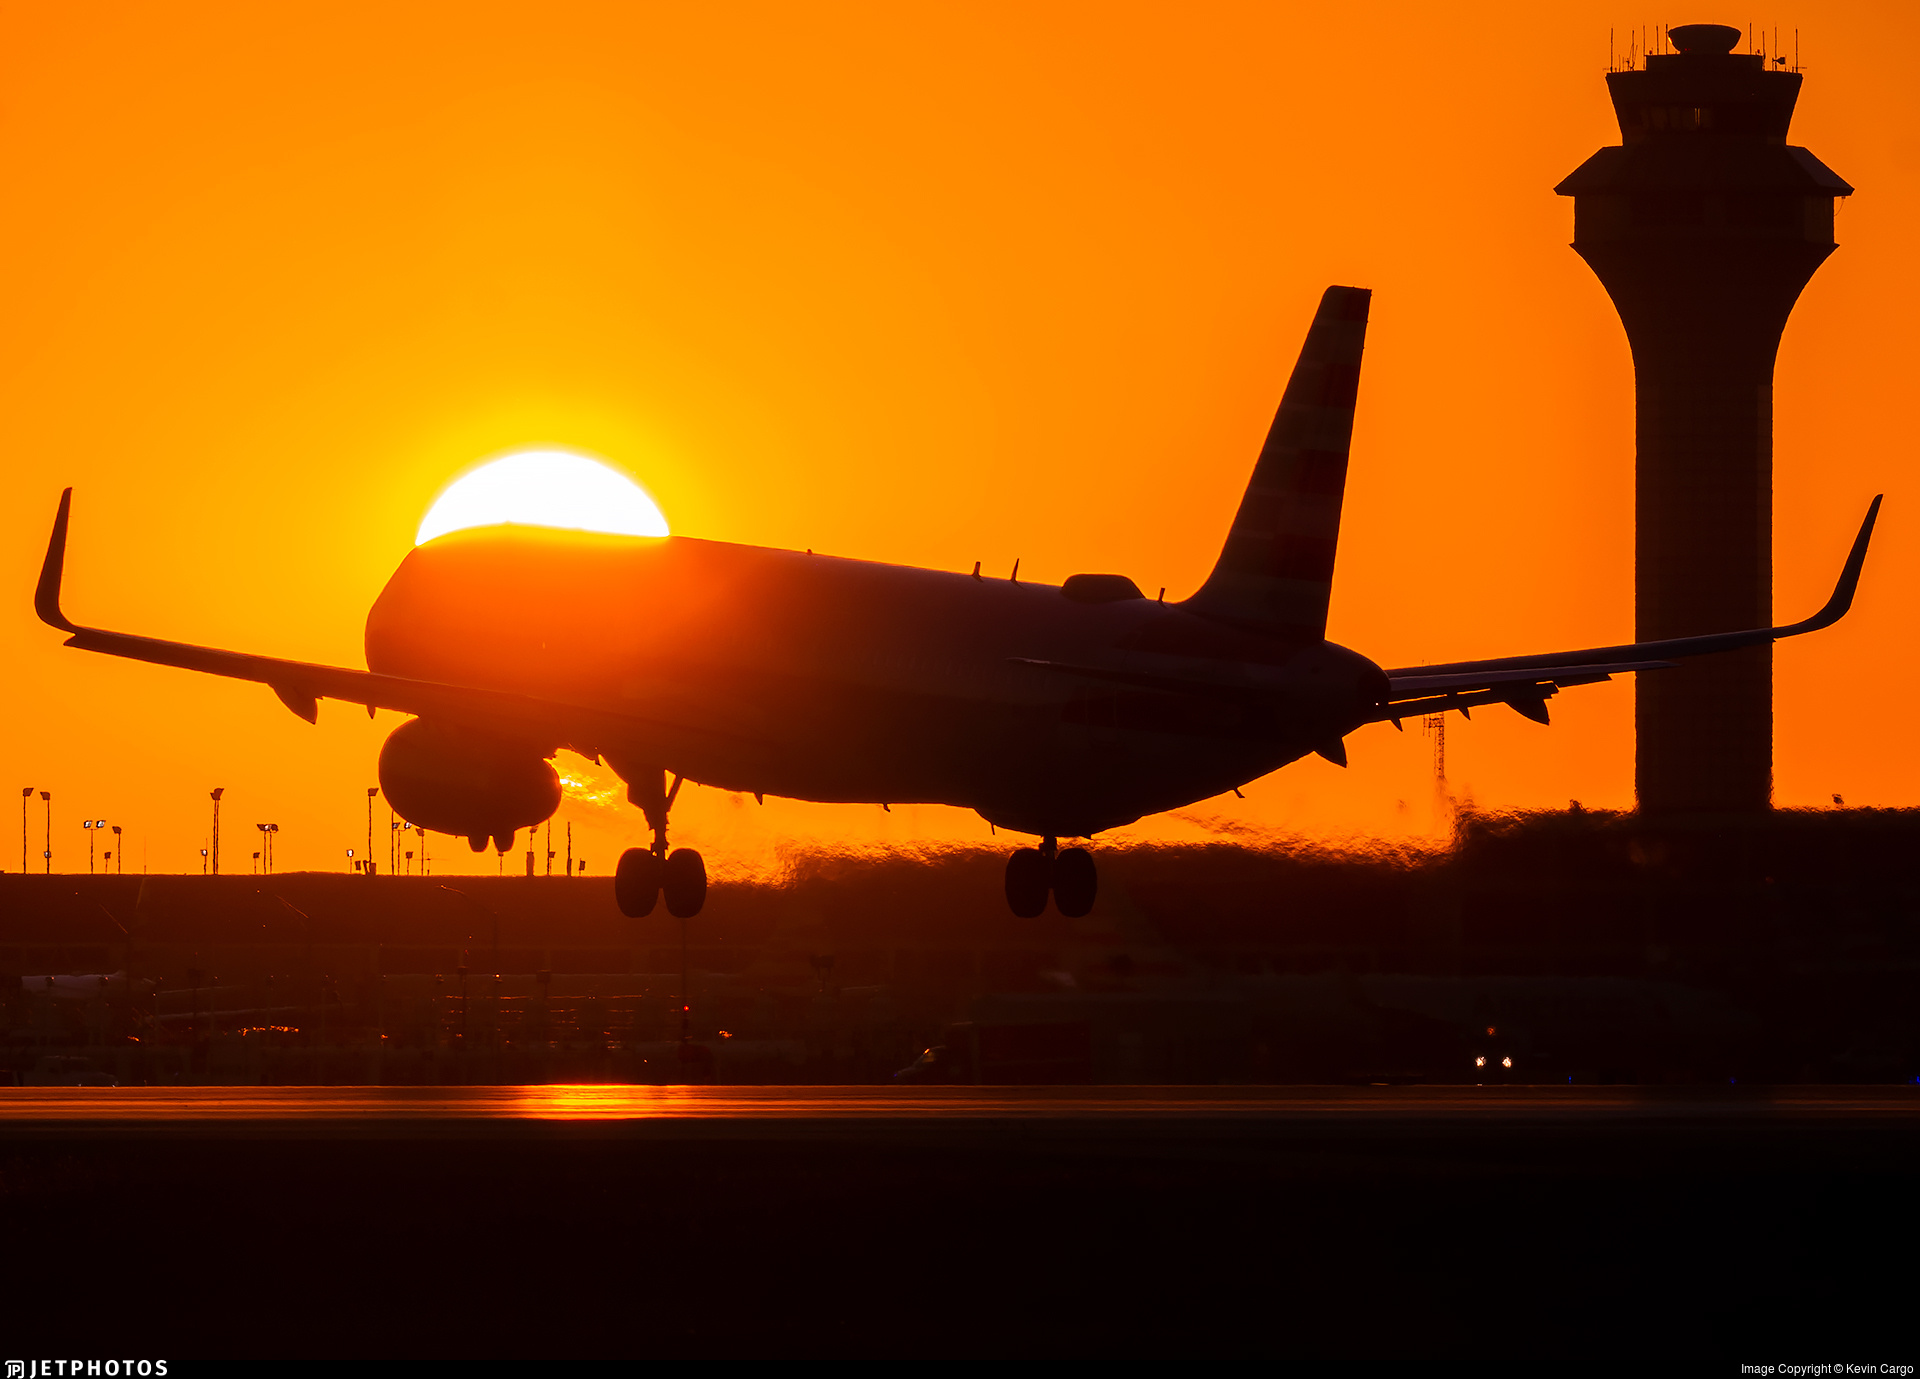 Airline sunset takeoff A321